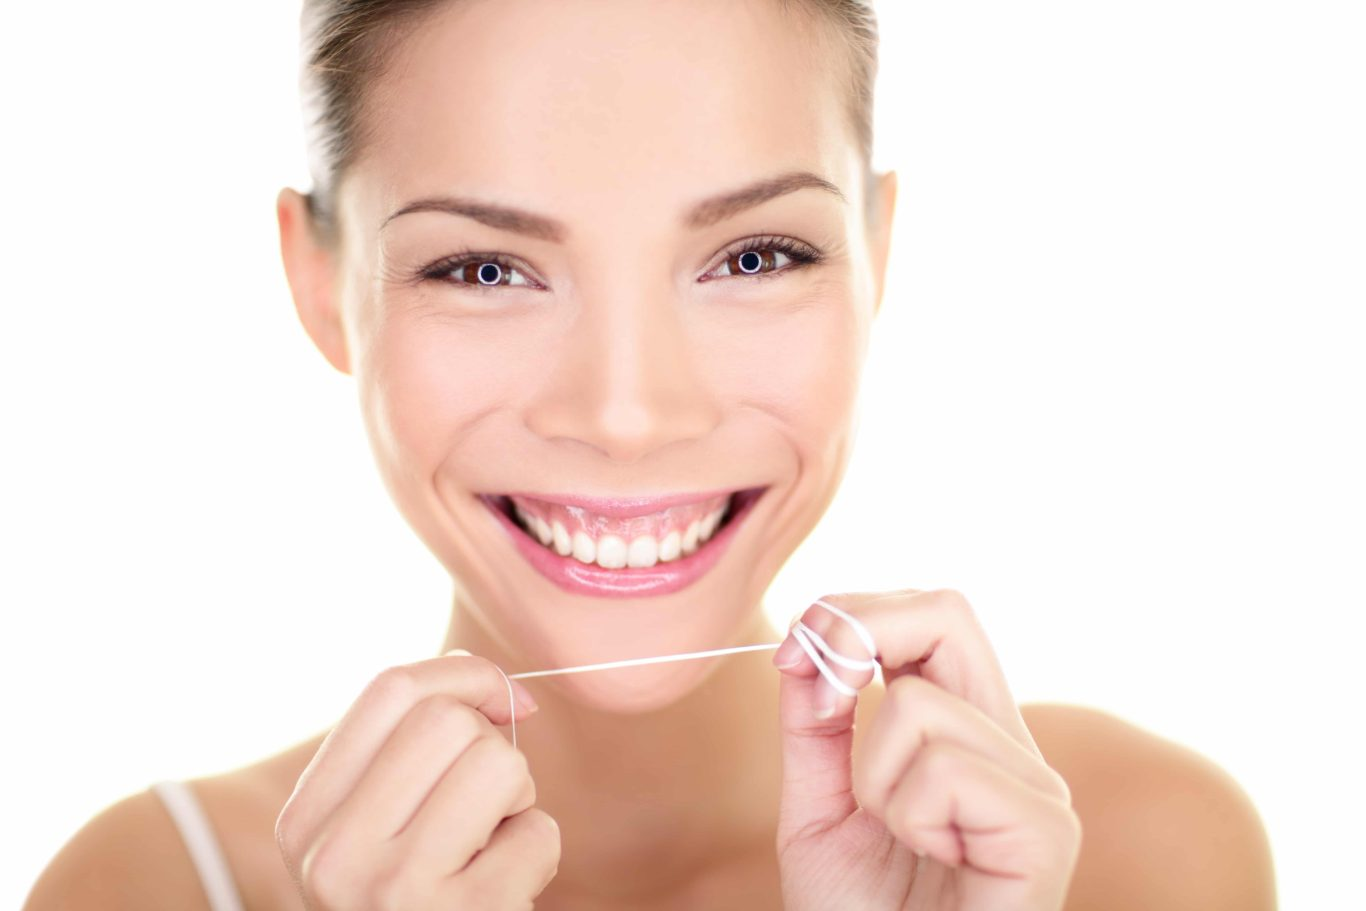 Woman Flossing Teeth While Smiling